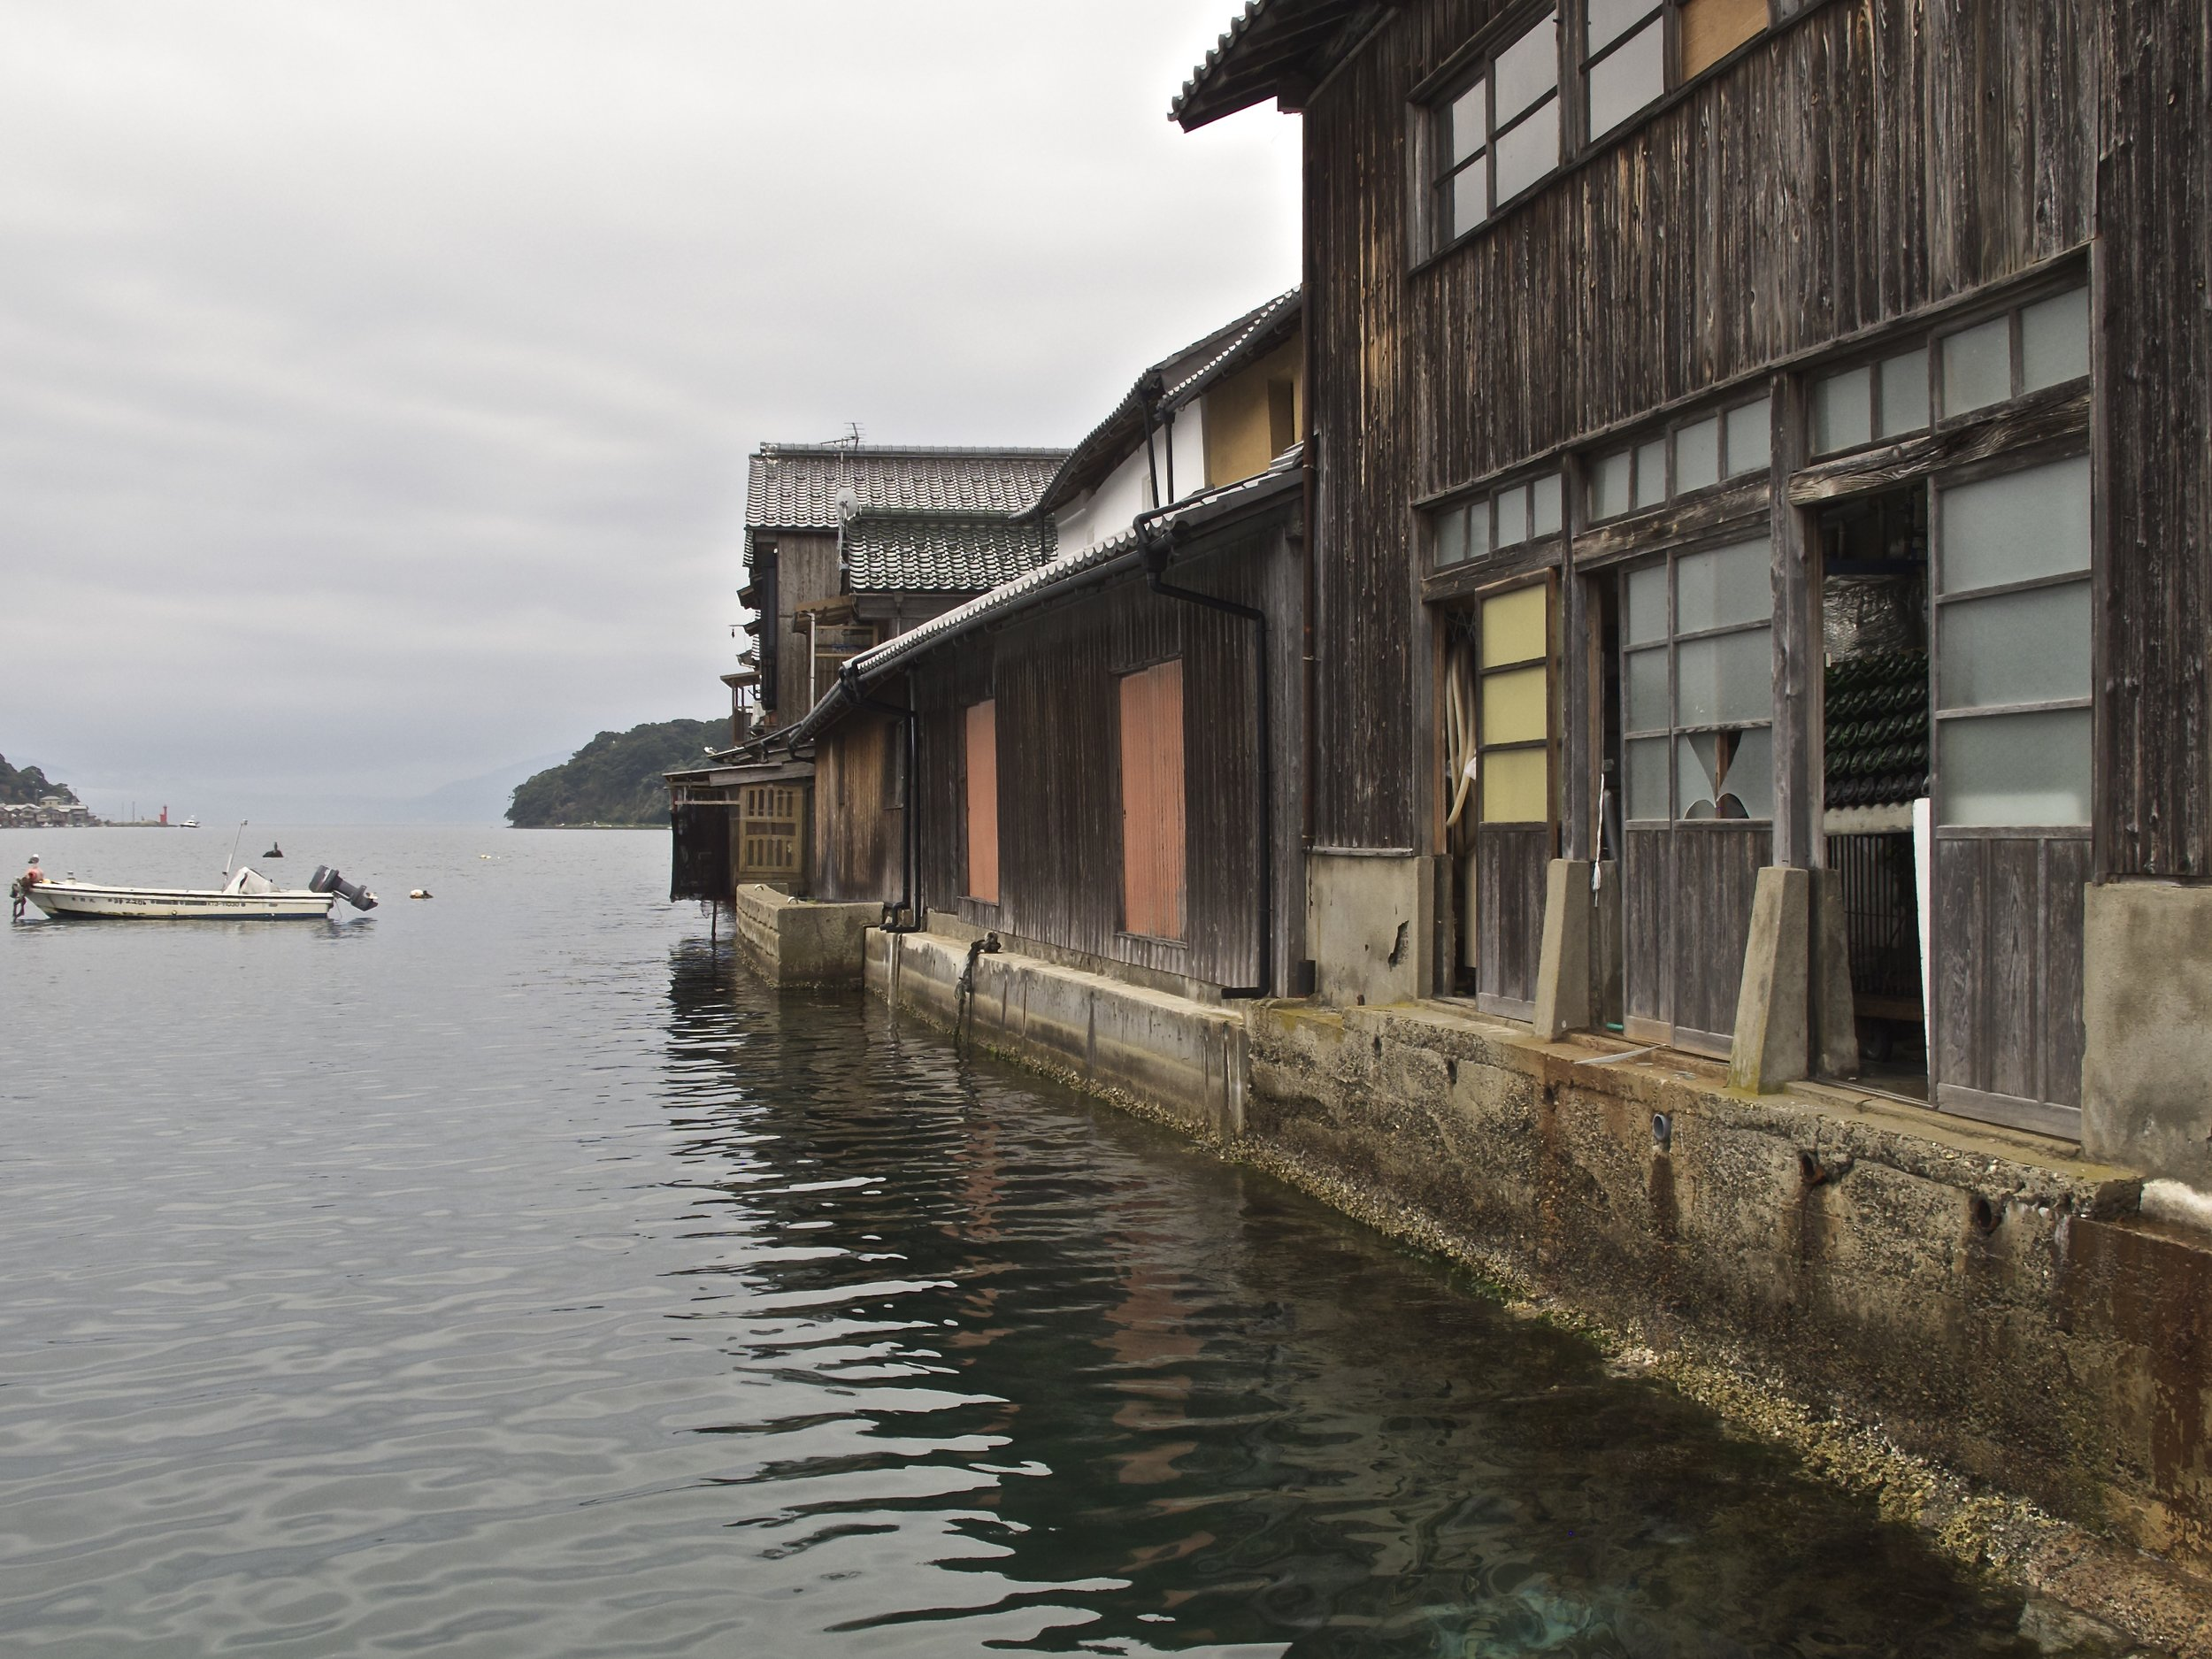 Like all buildings in Ine, Mukai Shuzo Sake Brewery is located at the water's edge, making it easy for local customers to come by boat to buy their sake.